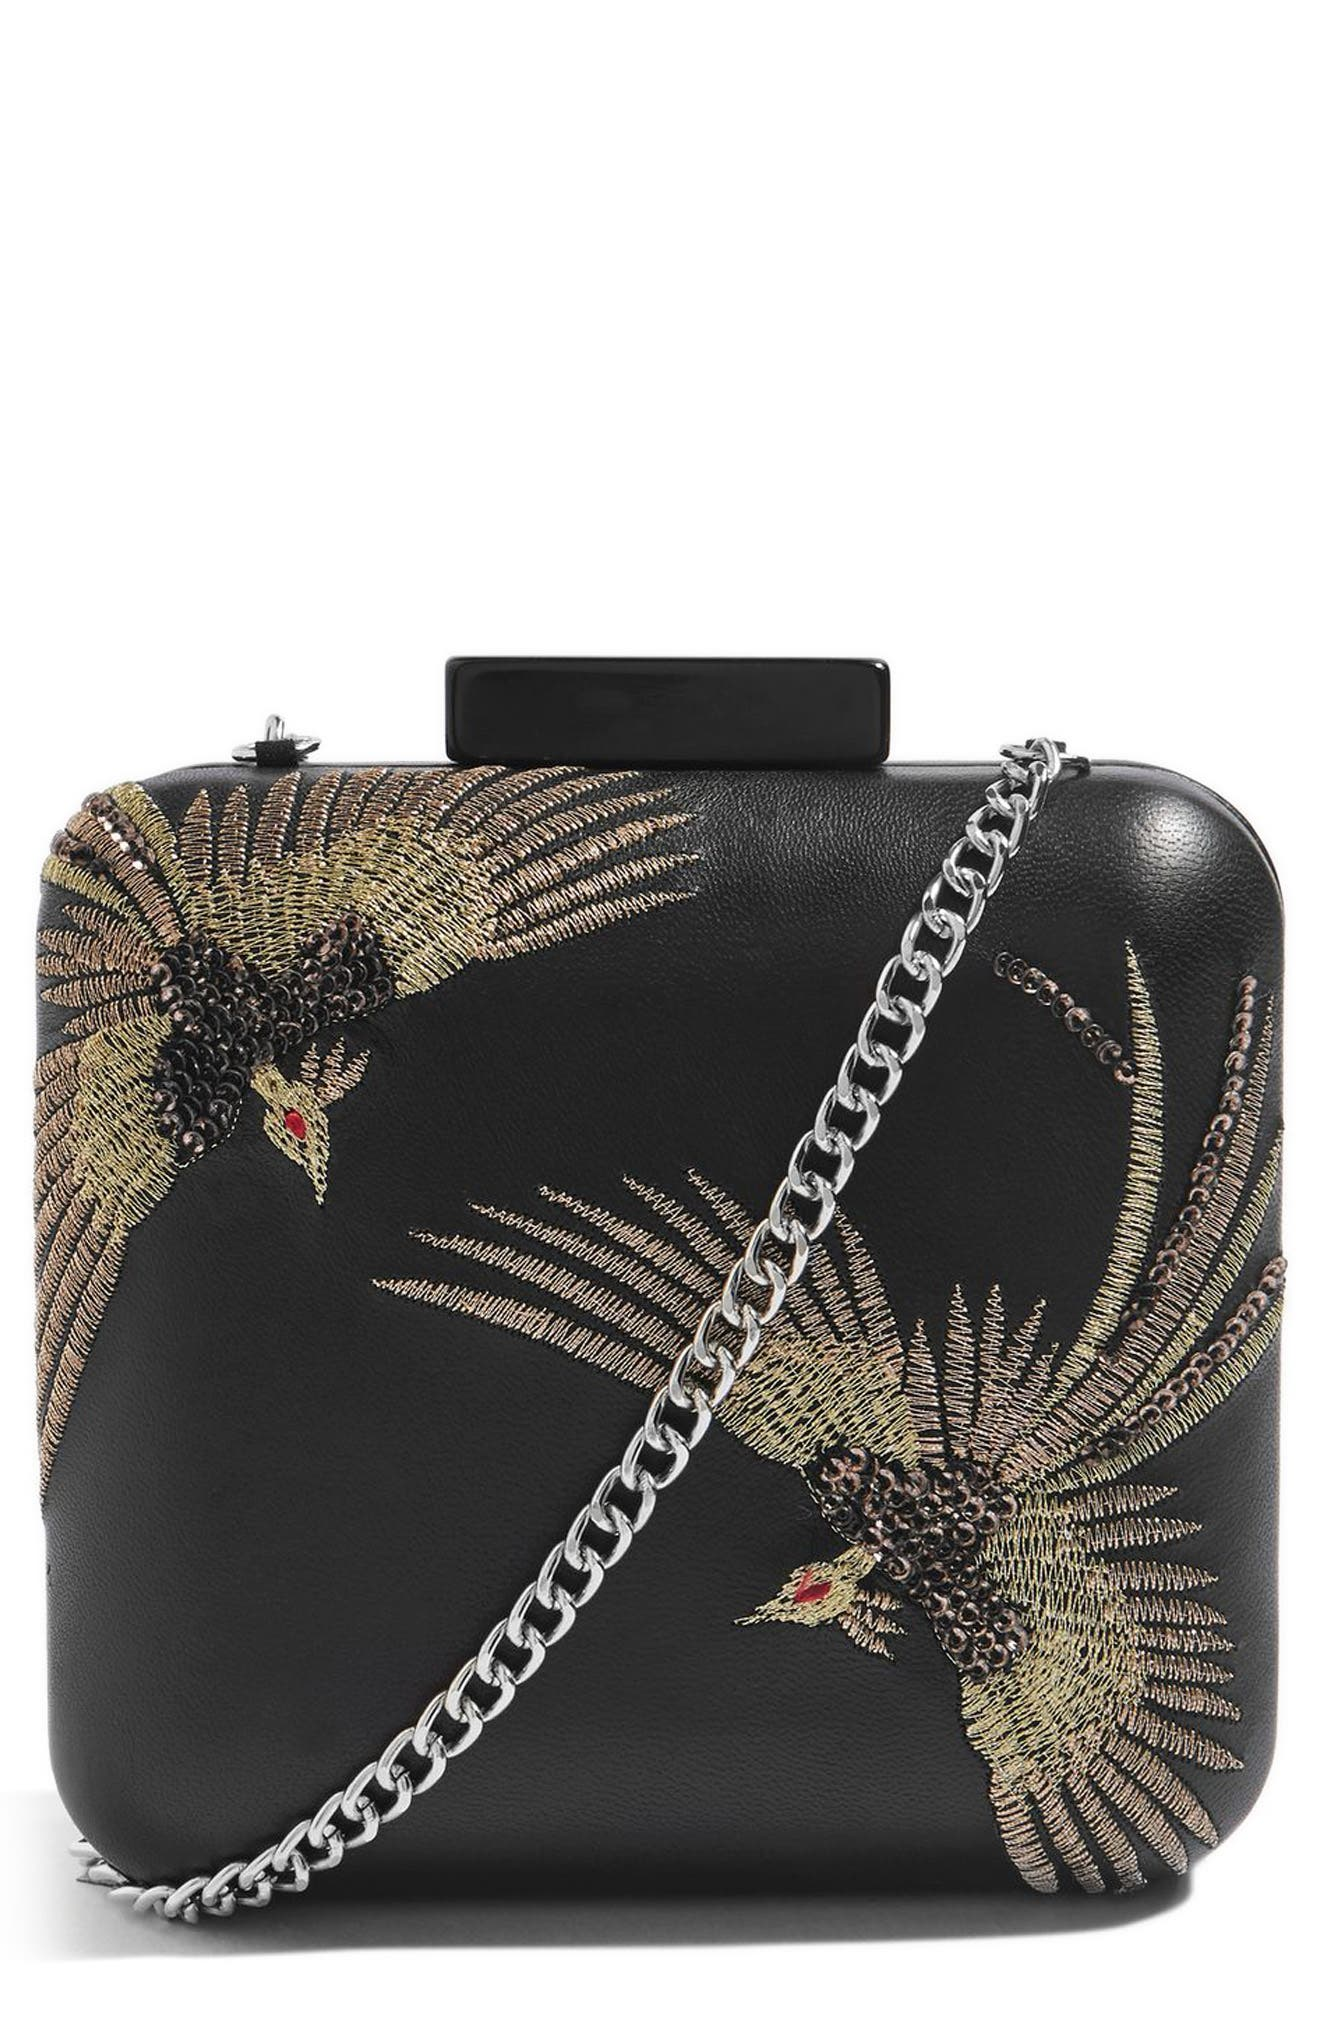 Embroidered Bird Boxy Leather Crossbody Bag,                         Main,                         color, Black Multi